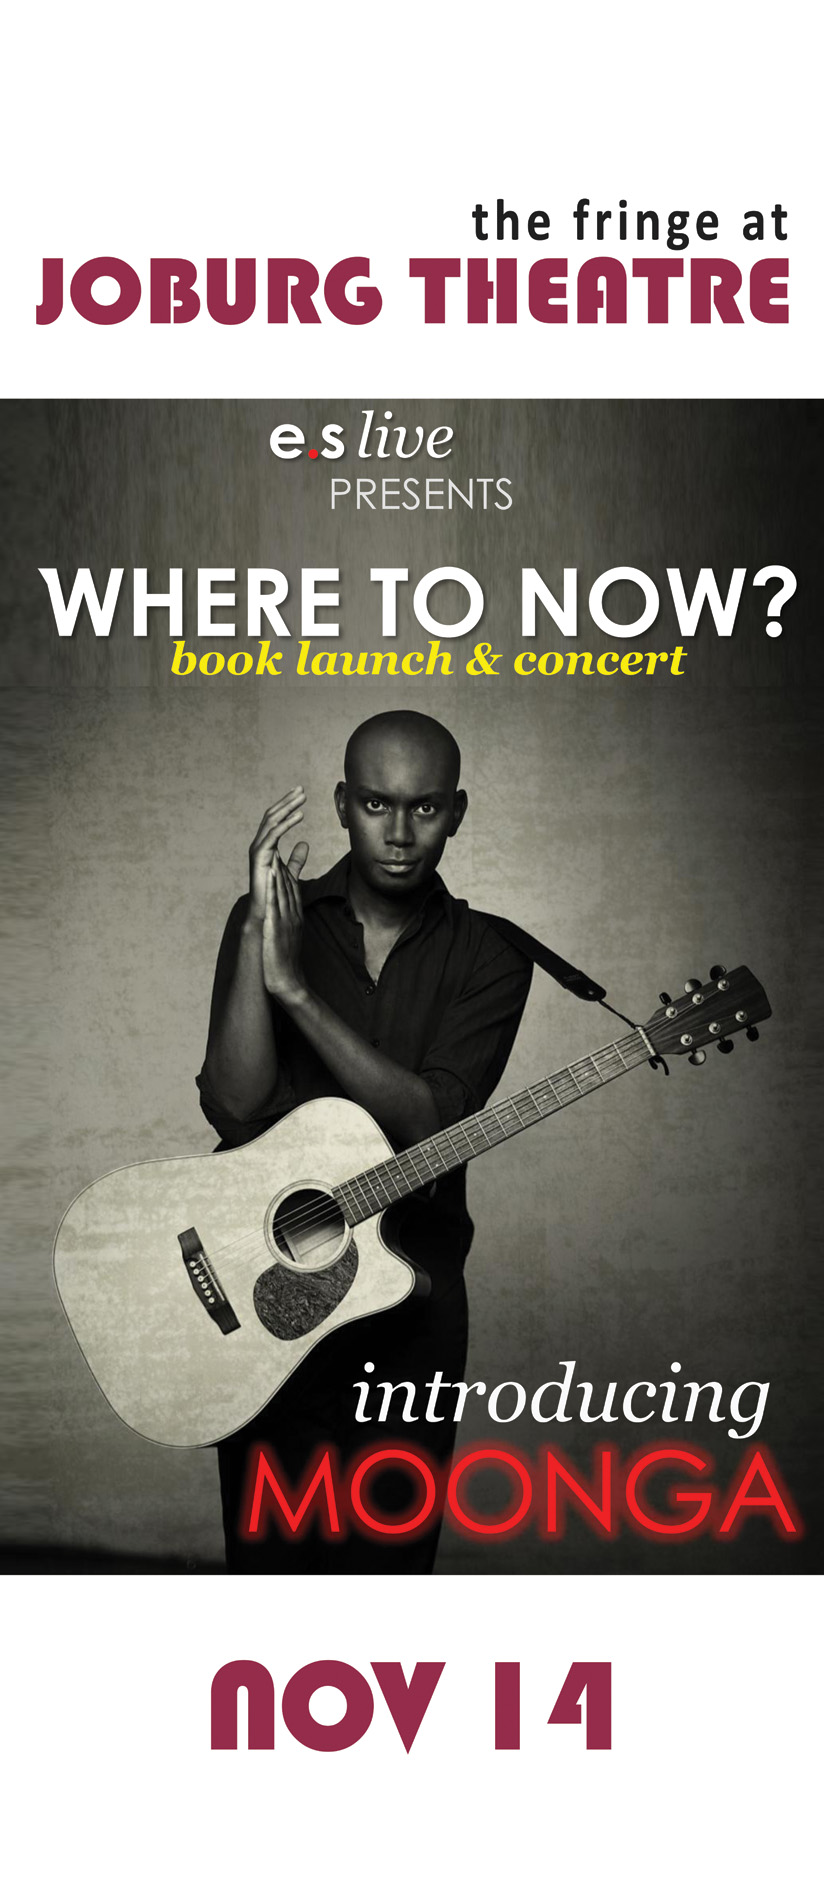 Where to Now: Book Launch & Concert, 14 November 2013